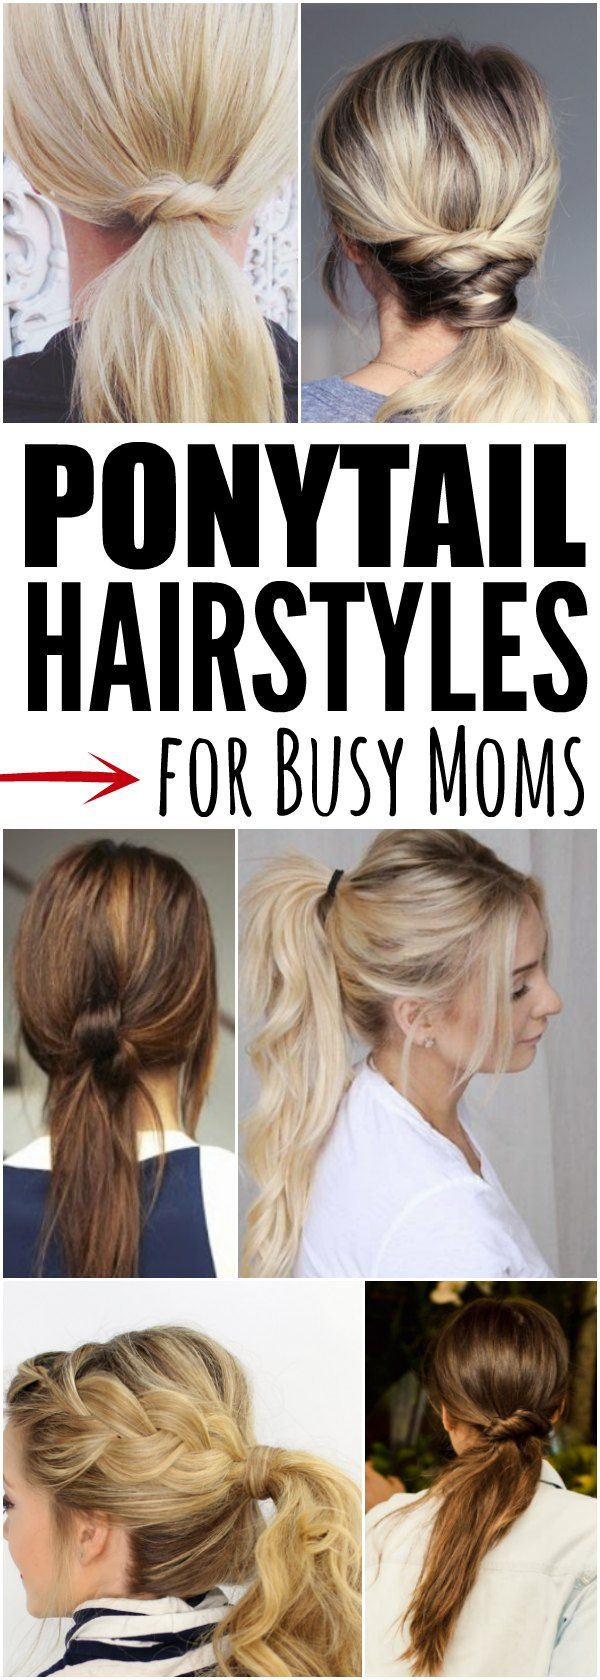 best 25+ simple ponytail hairstyles ideas on pinterest | cool